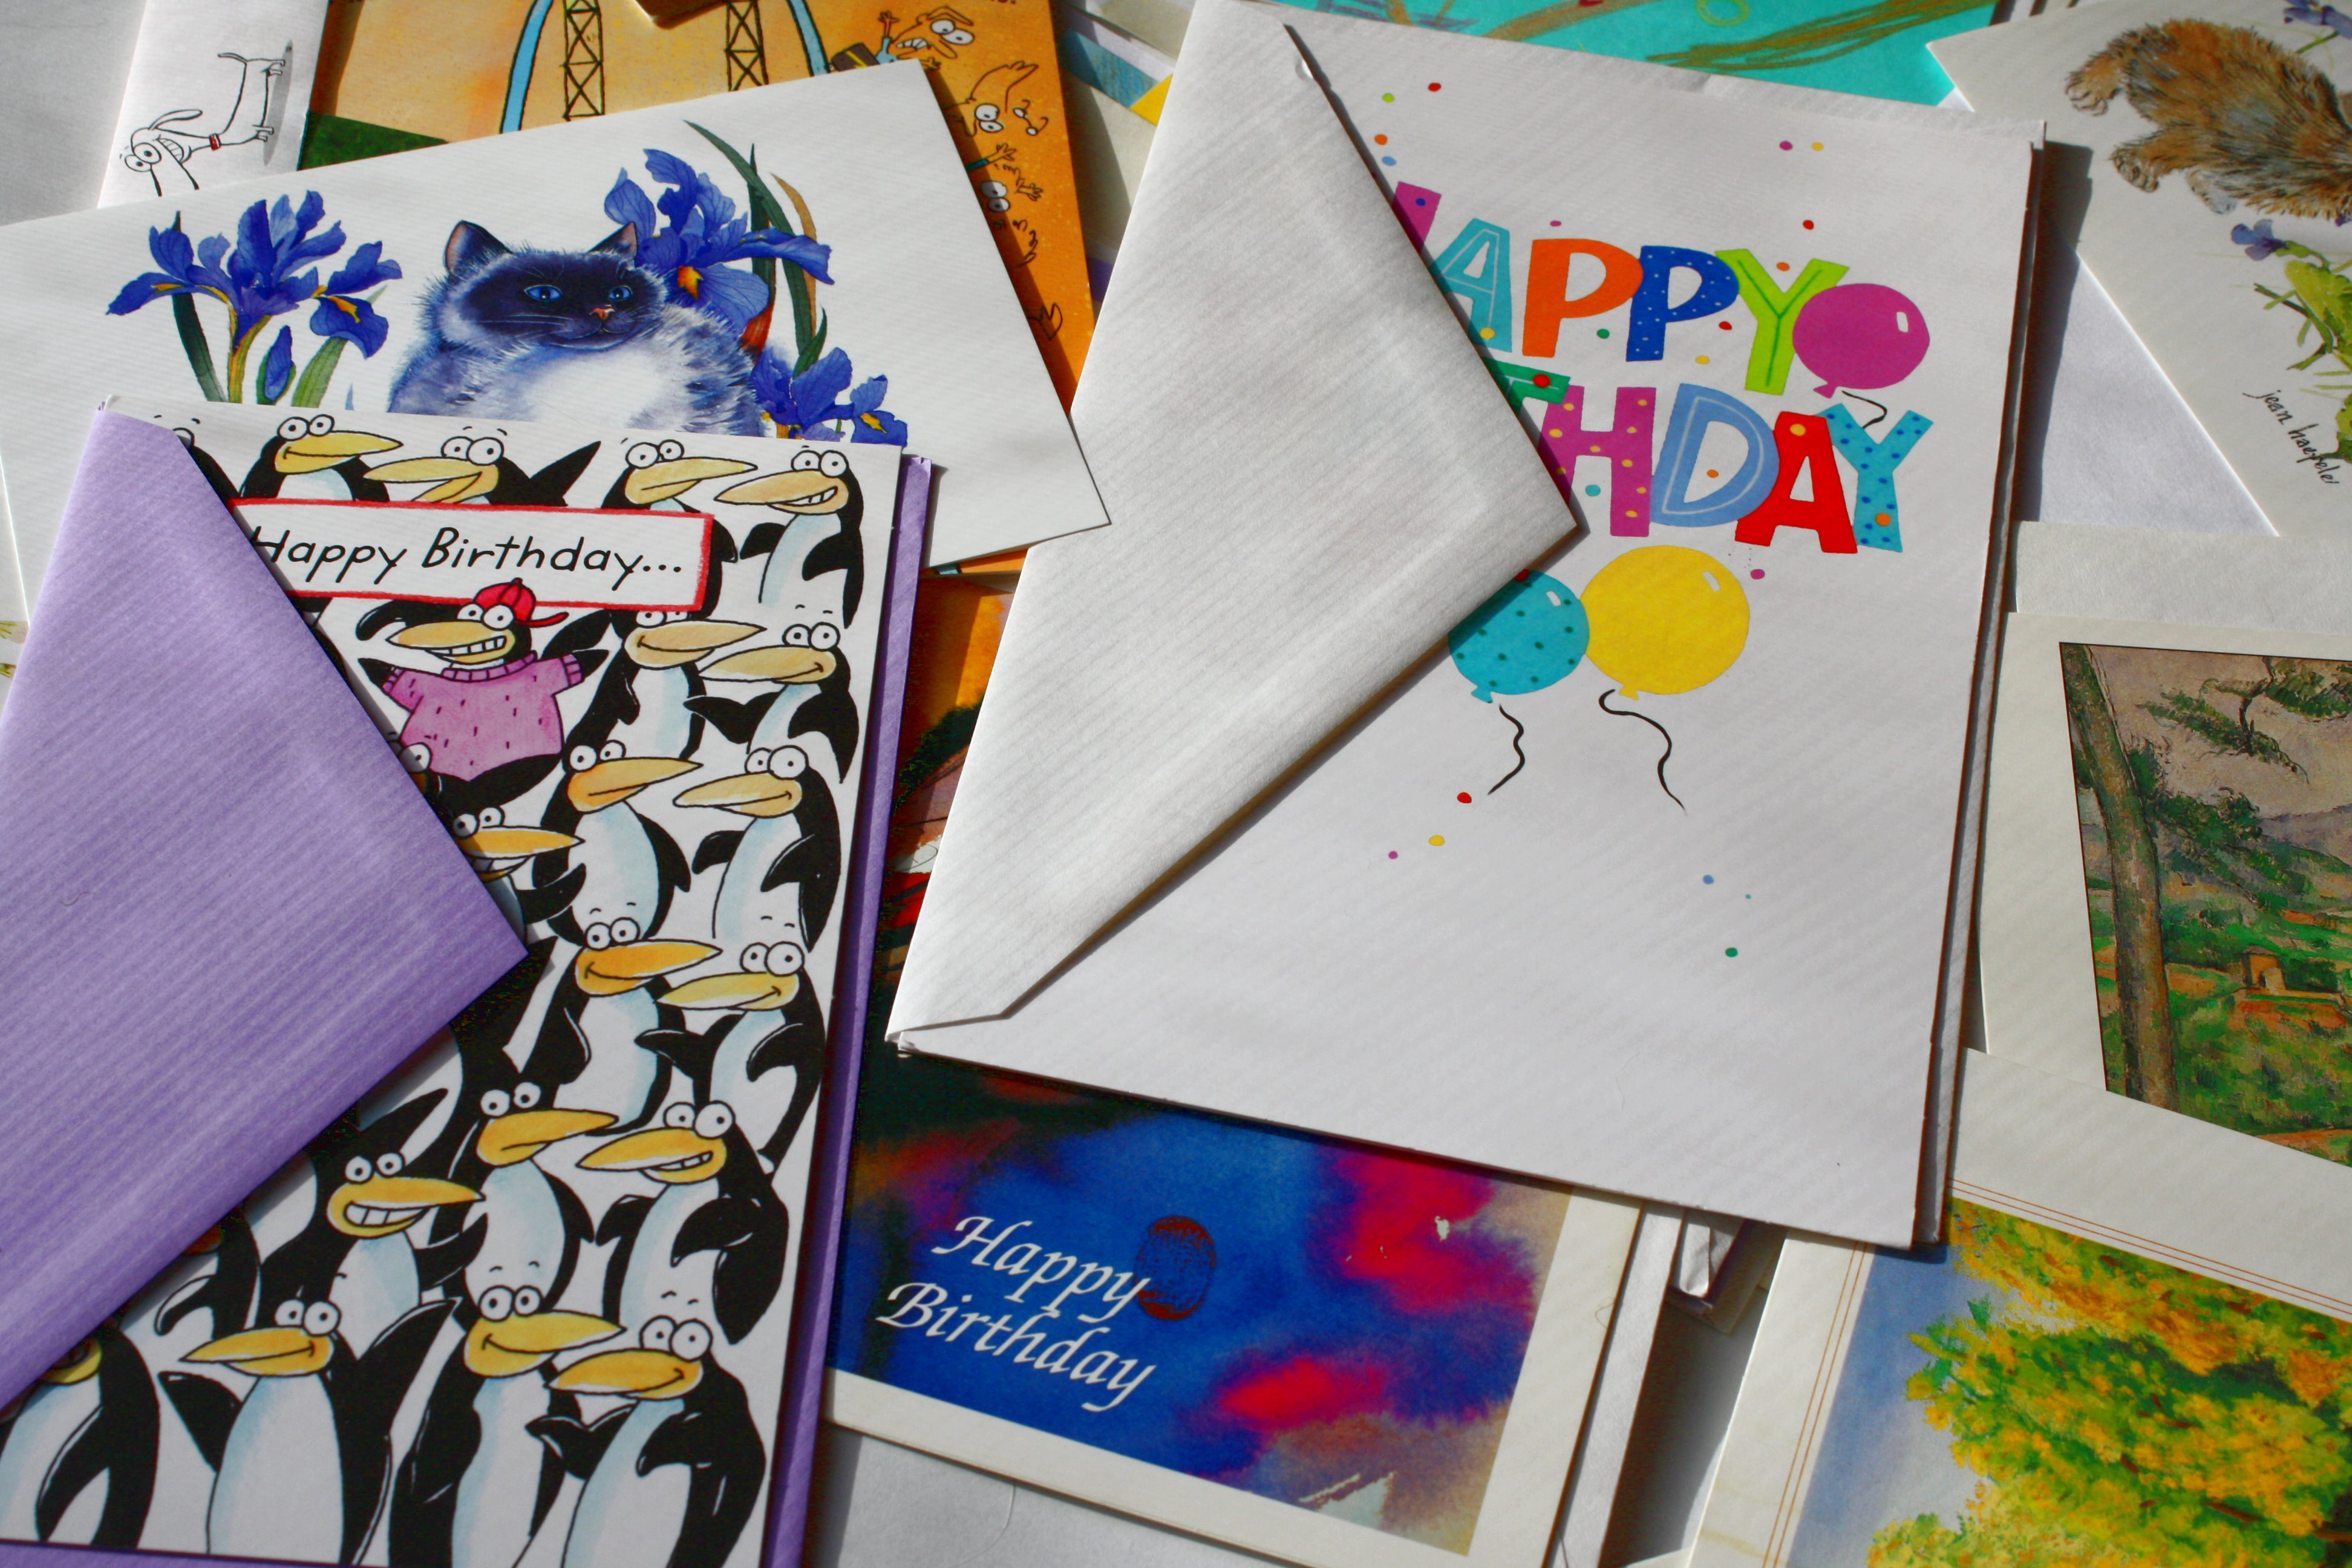 Birthday Cards Picture   Free Photograph   Photos Public ...